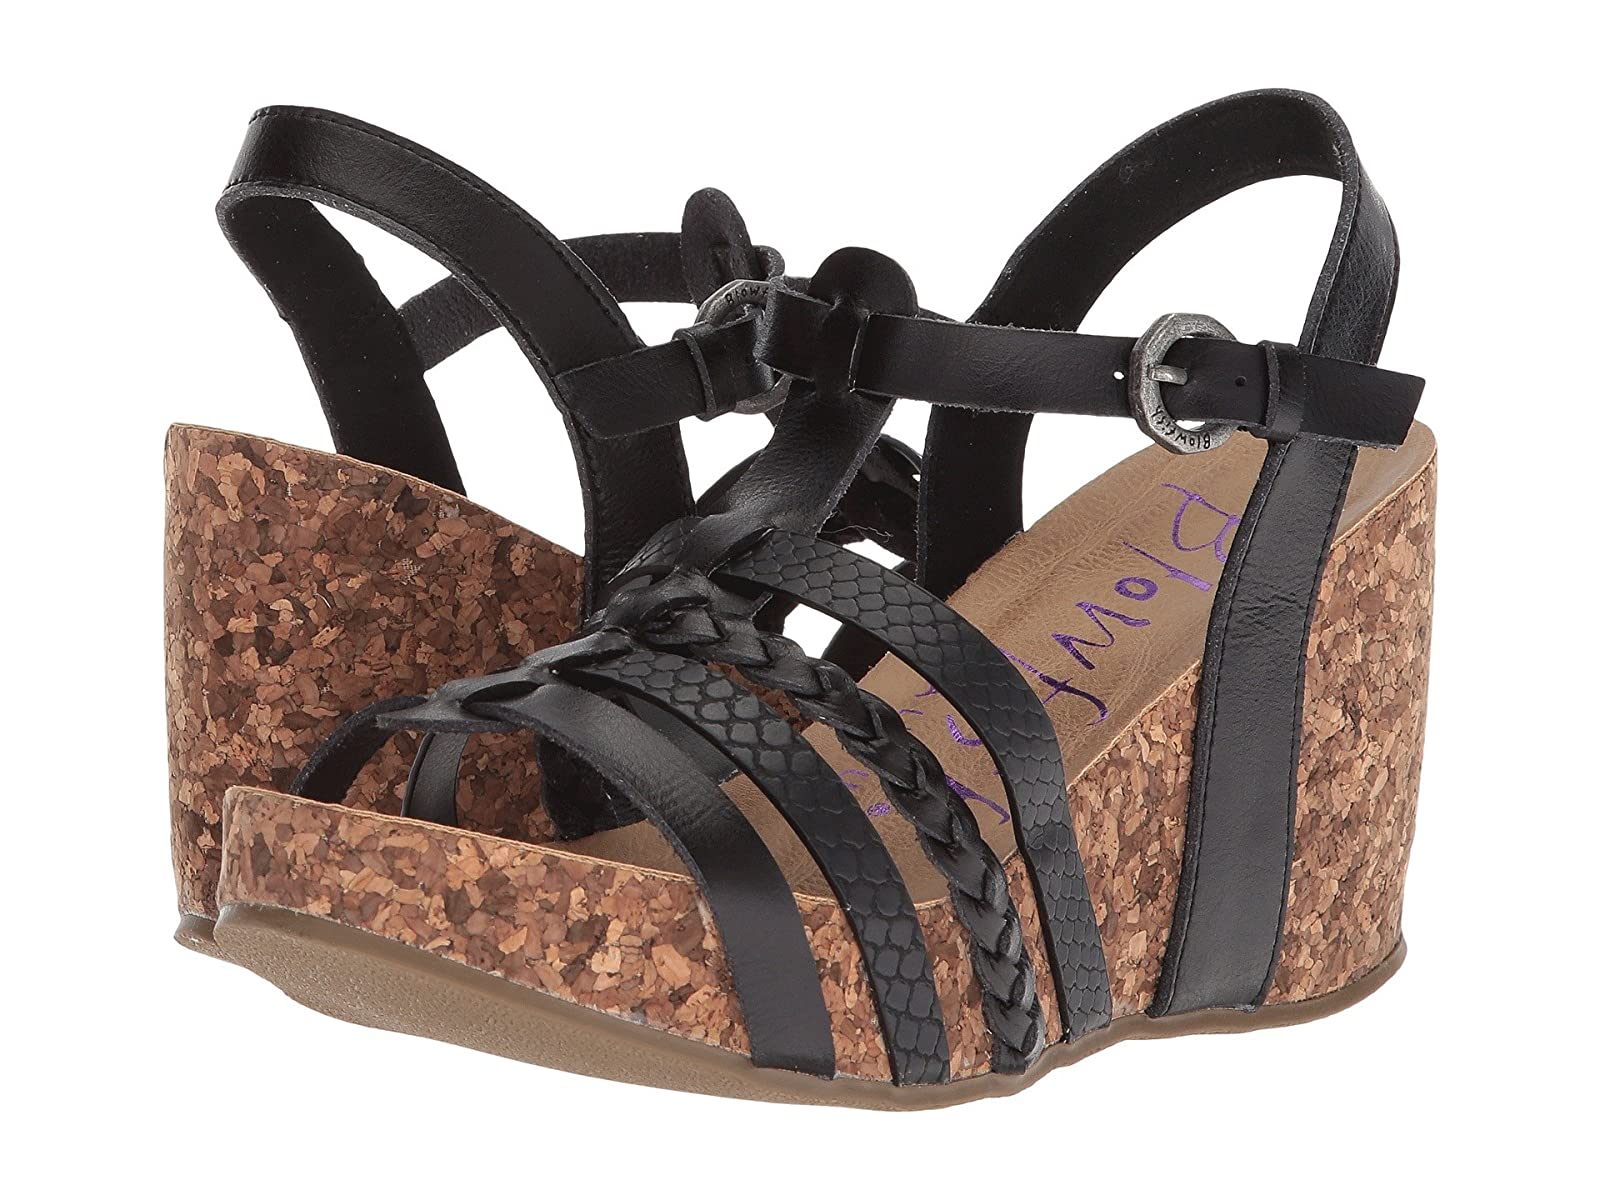 Blowfish Humble-CAtmospheric grades have affordable shoes